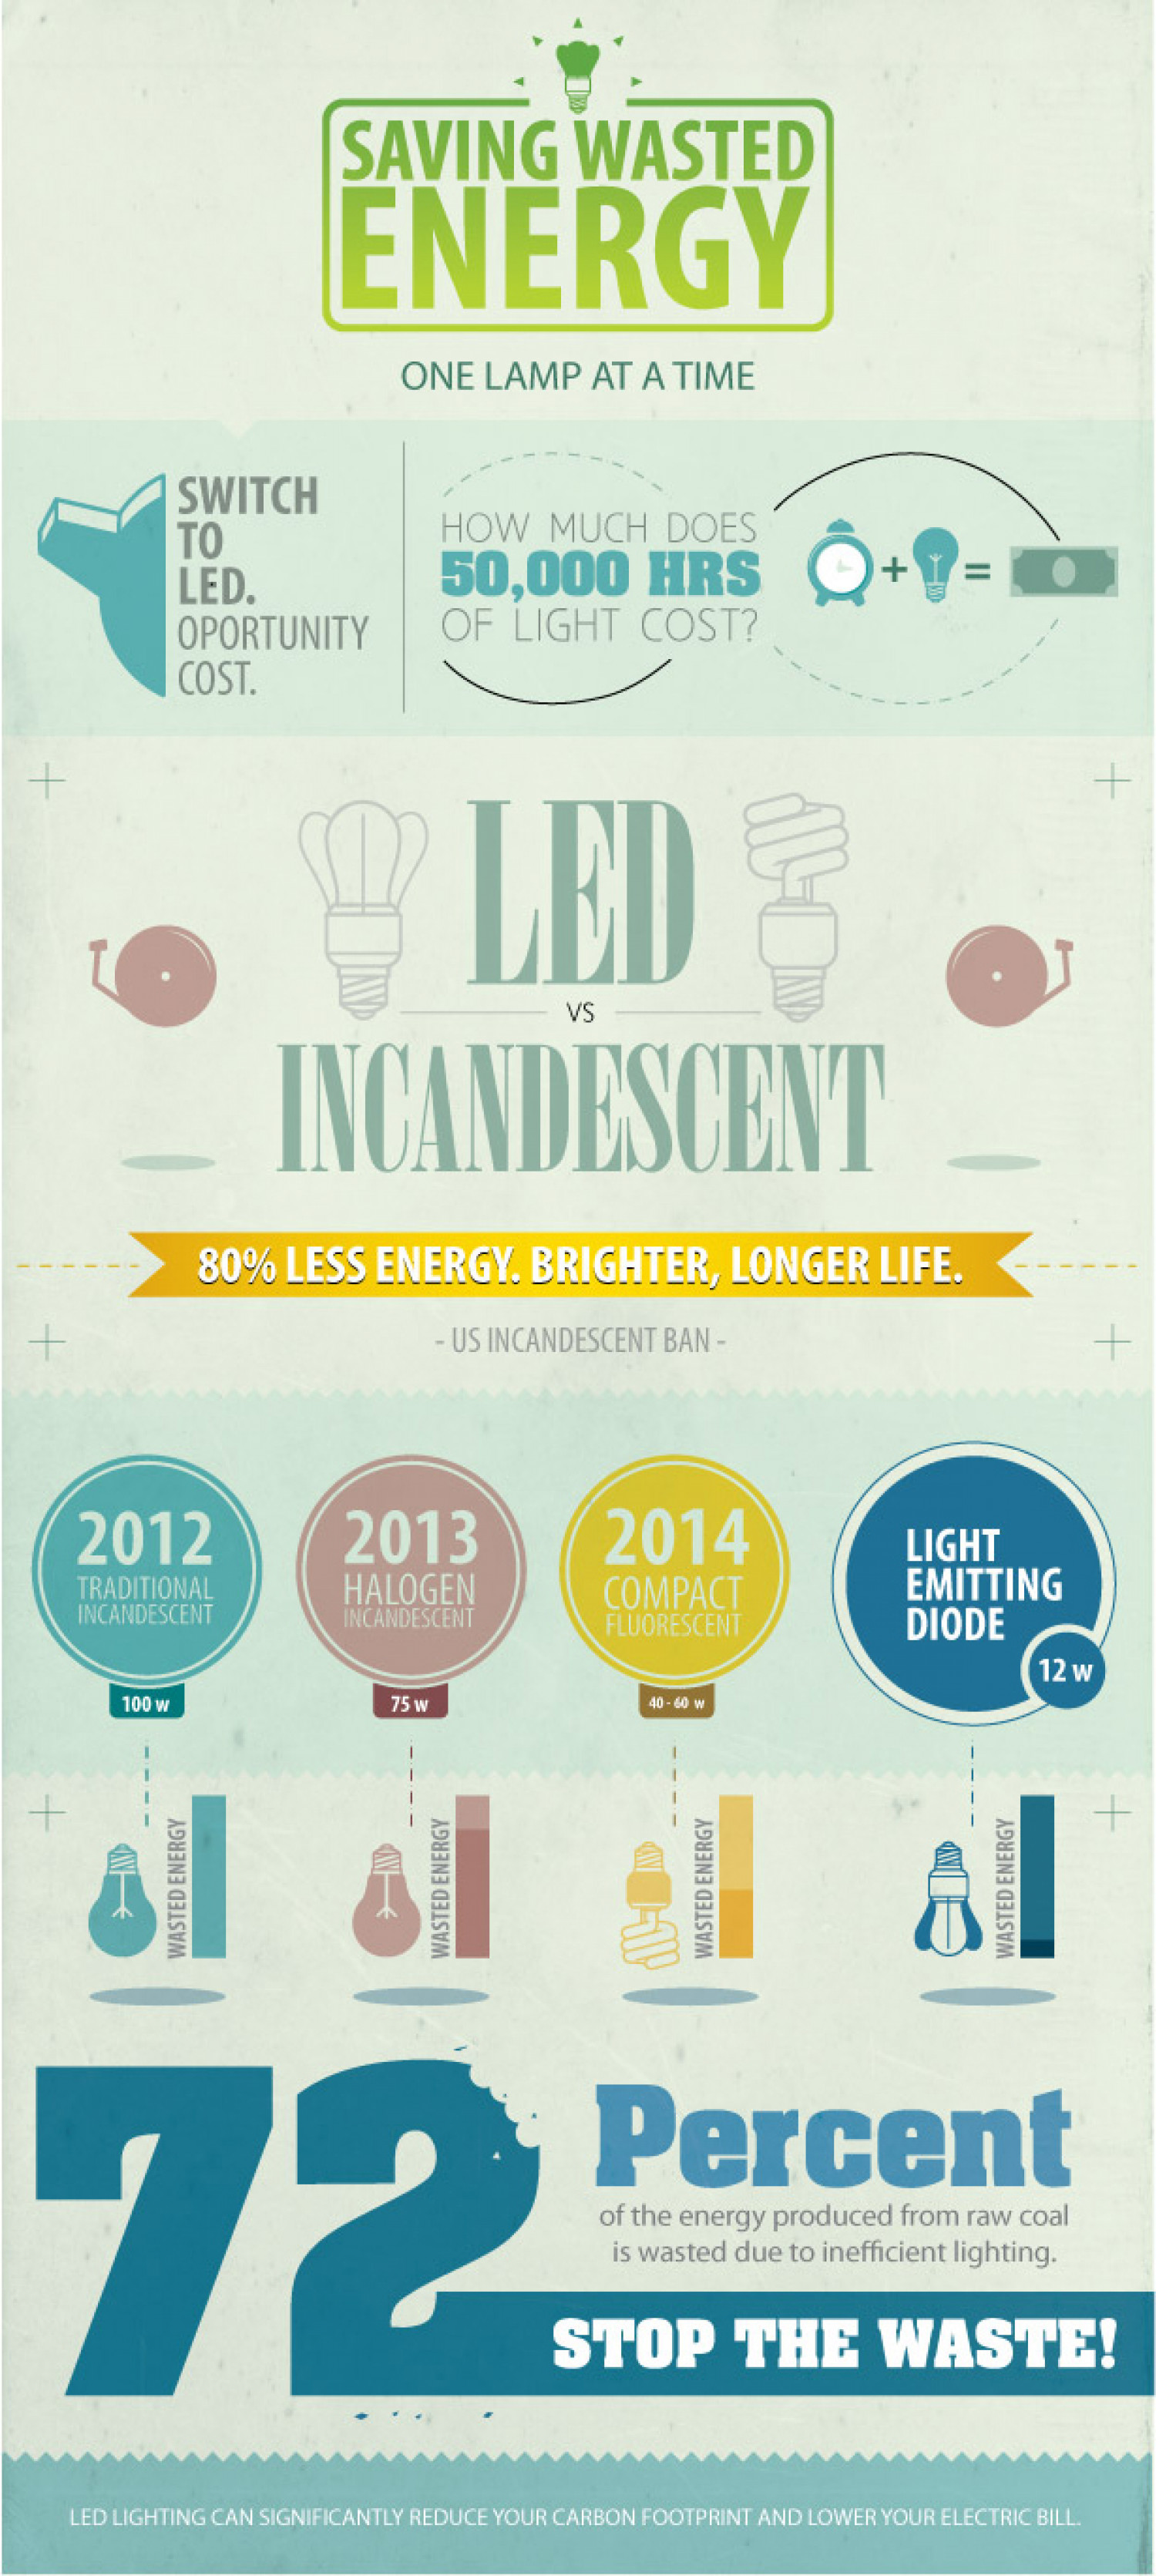 Saving wasted energy one lamp at a time Infographic